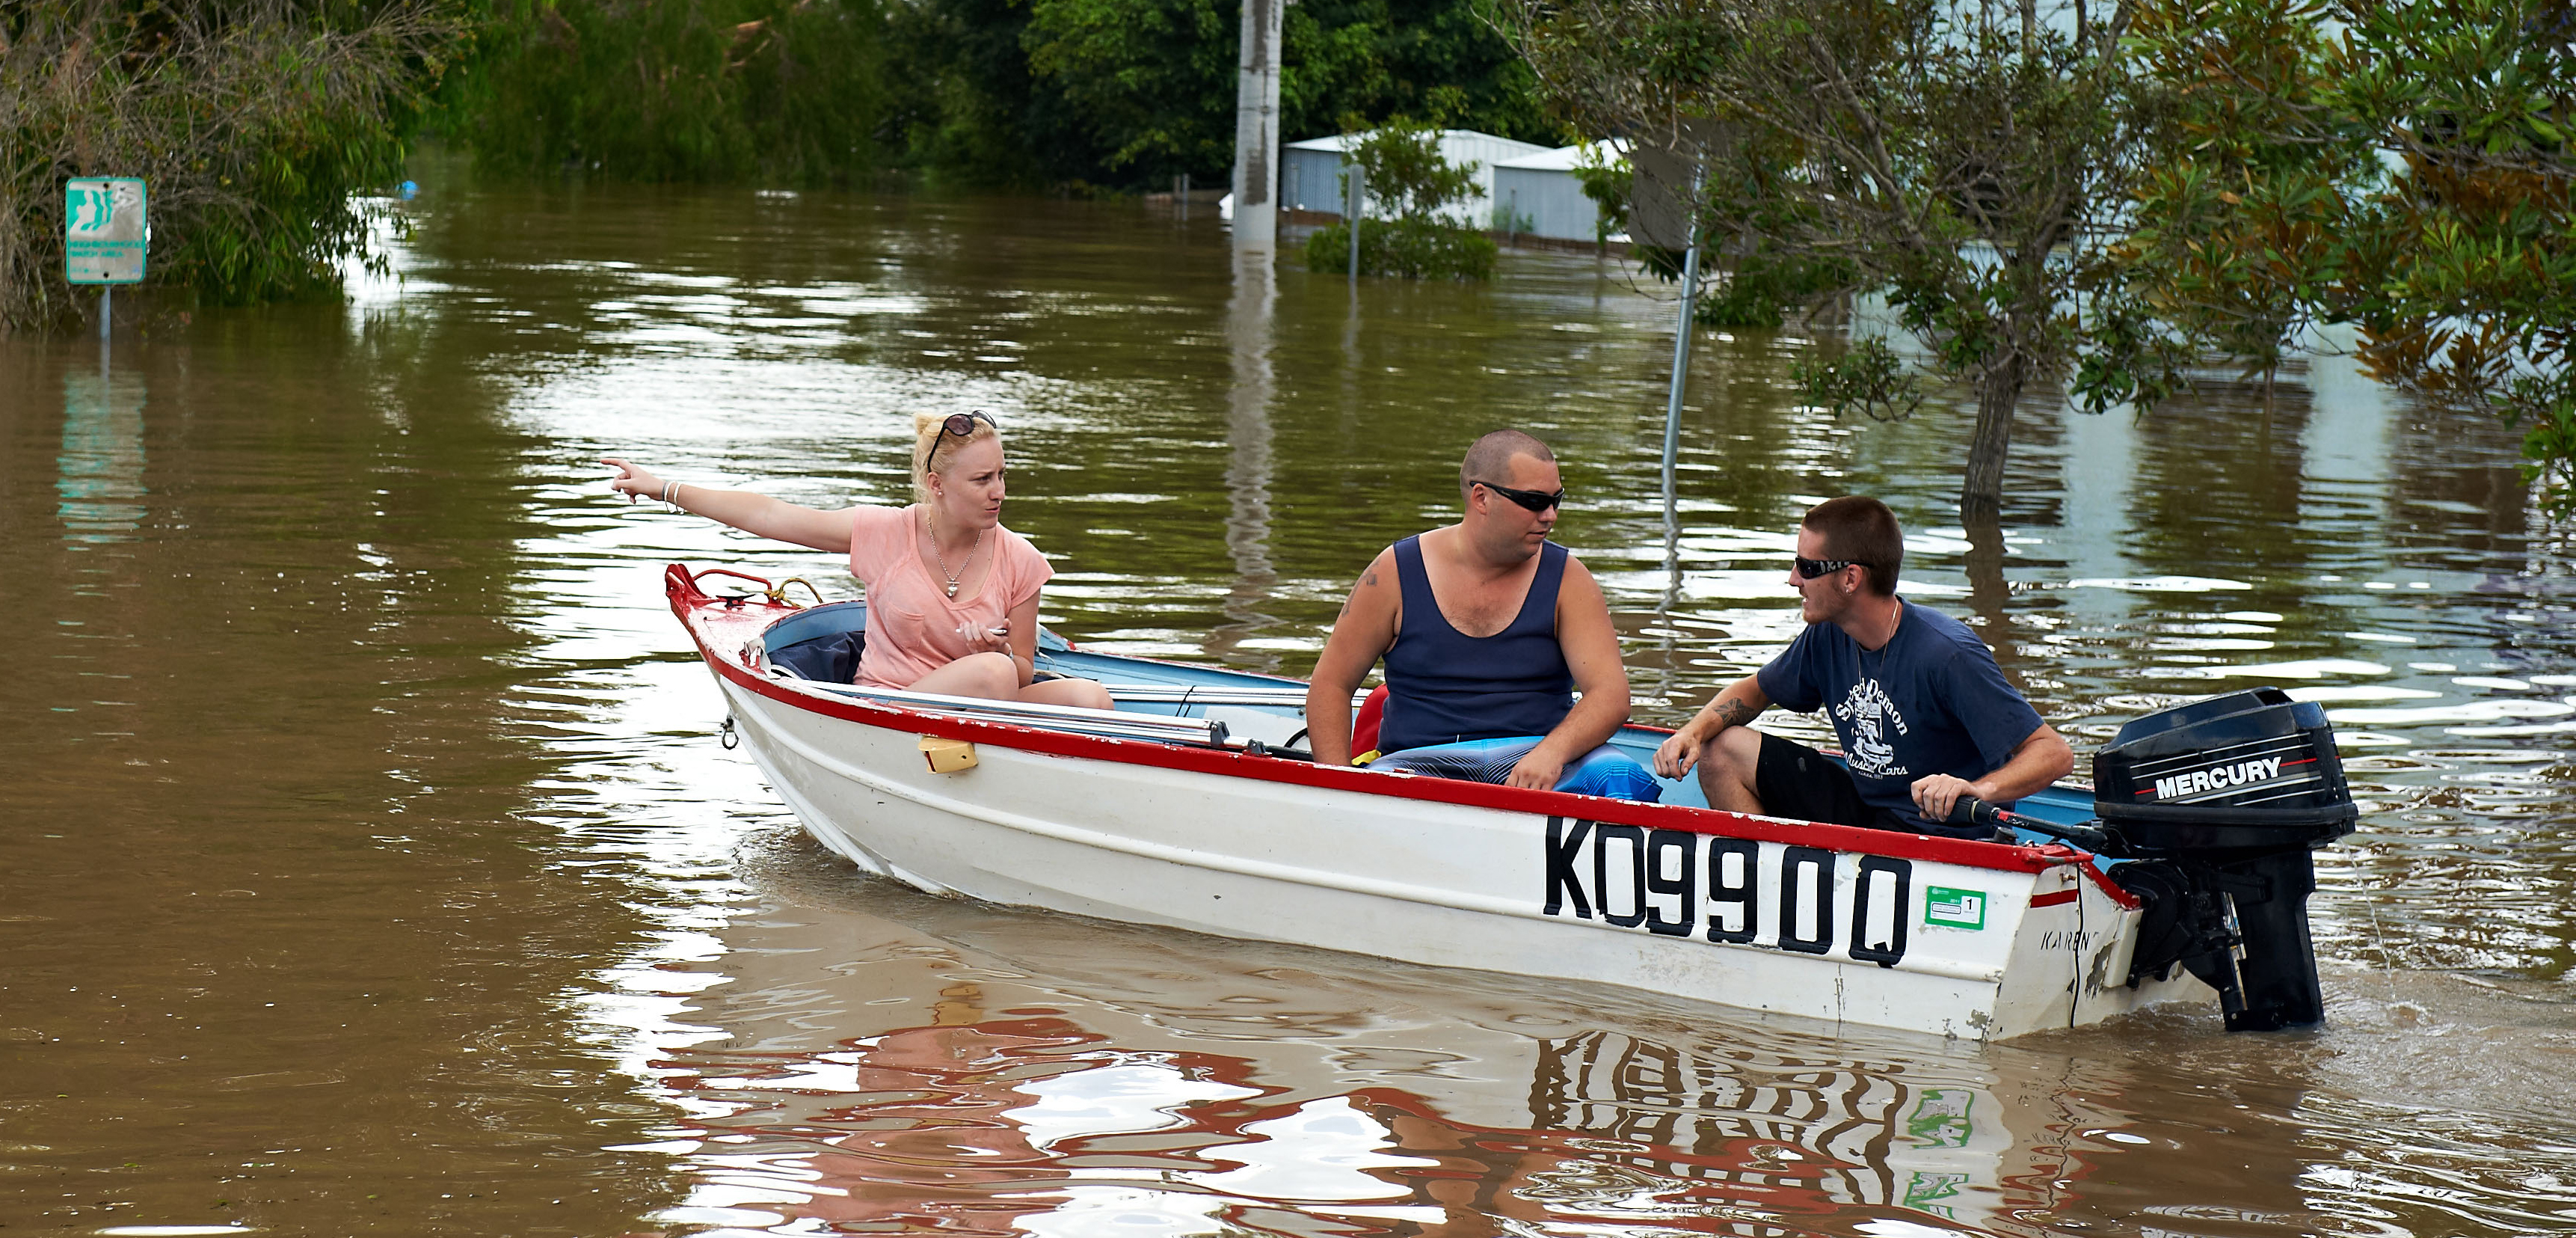 Three people navigate the flood waters in Brisbane, Australia, after heavy flooding hit the region in 2011. Photo by Mark Nemeth/Alamy Stock Photo